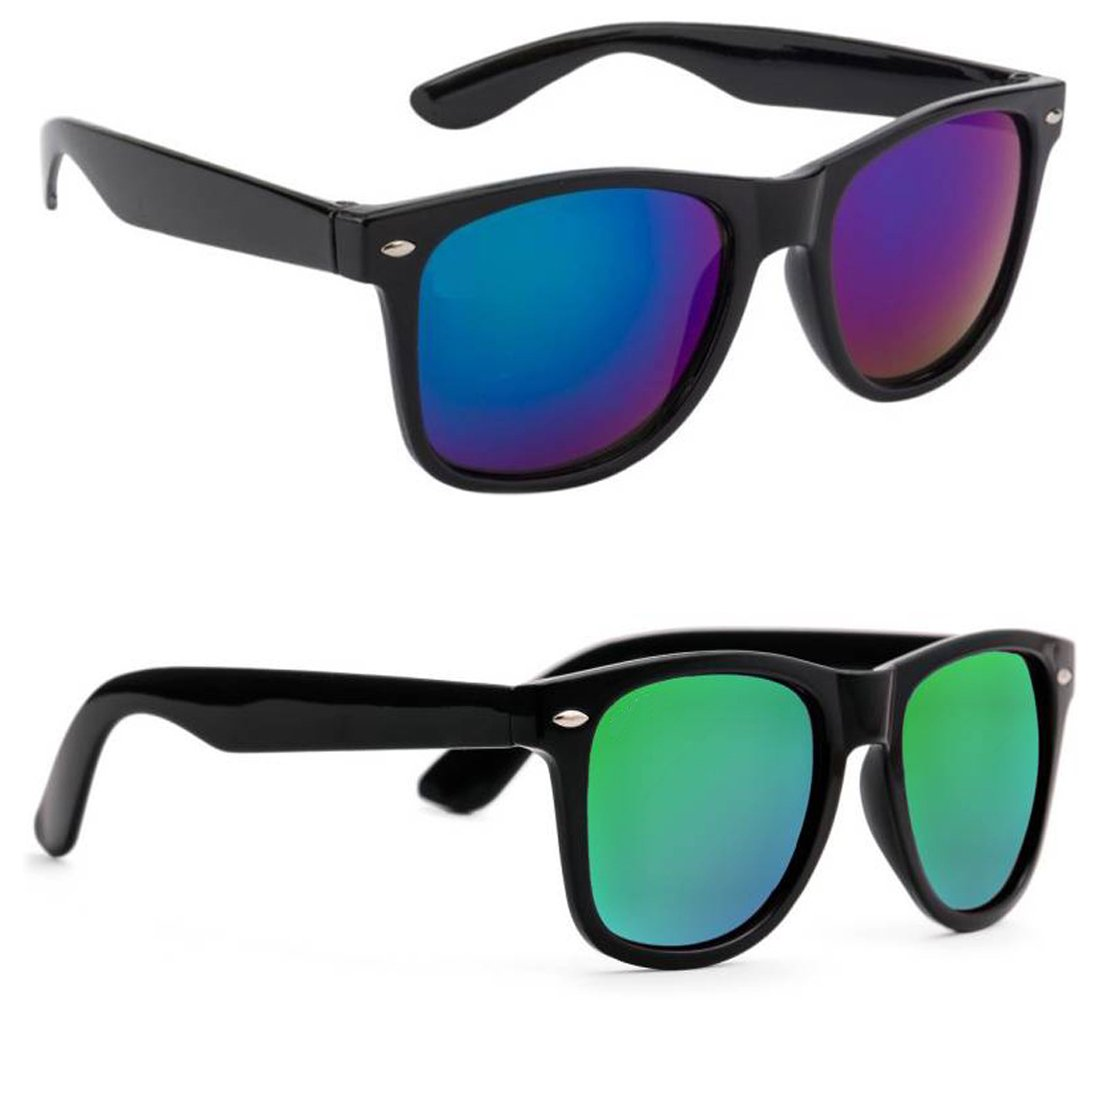 Elligator Reflactive Color Mirror Lens Sunglasses 55mm